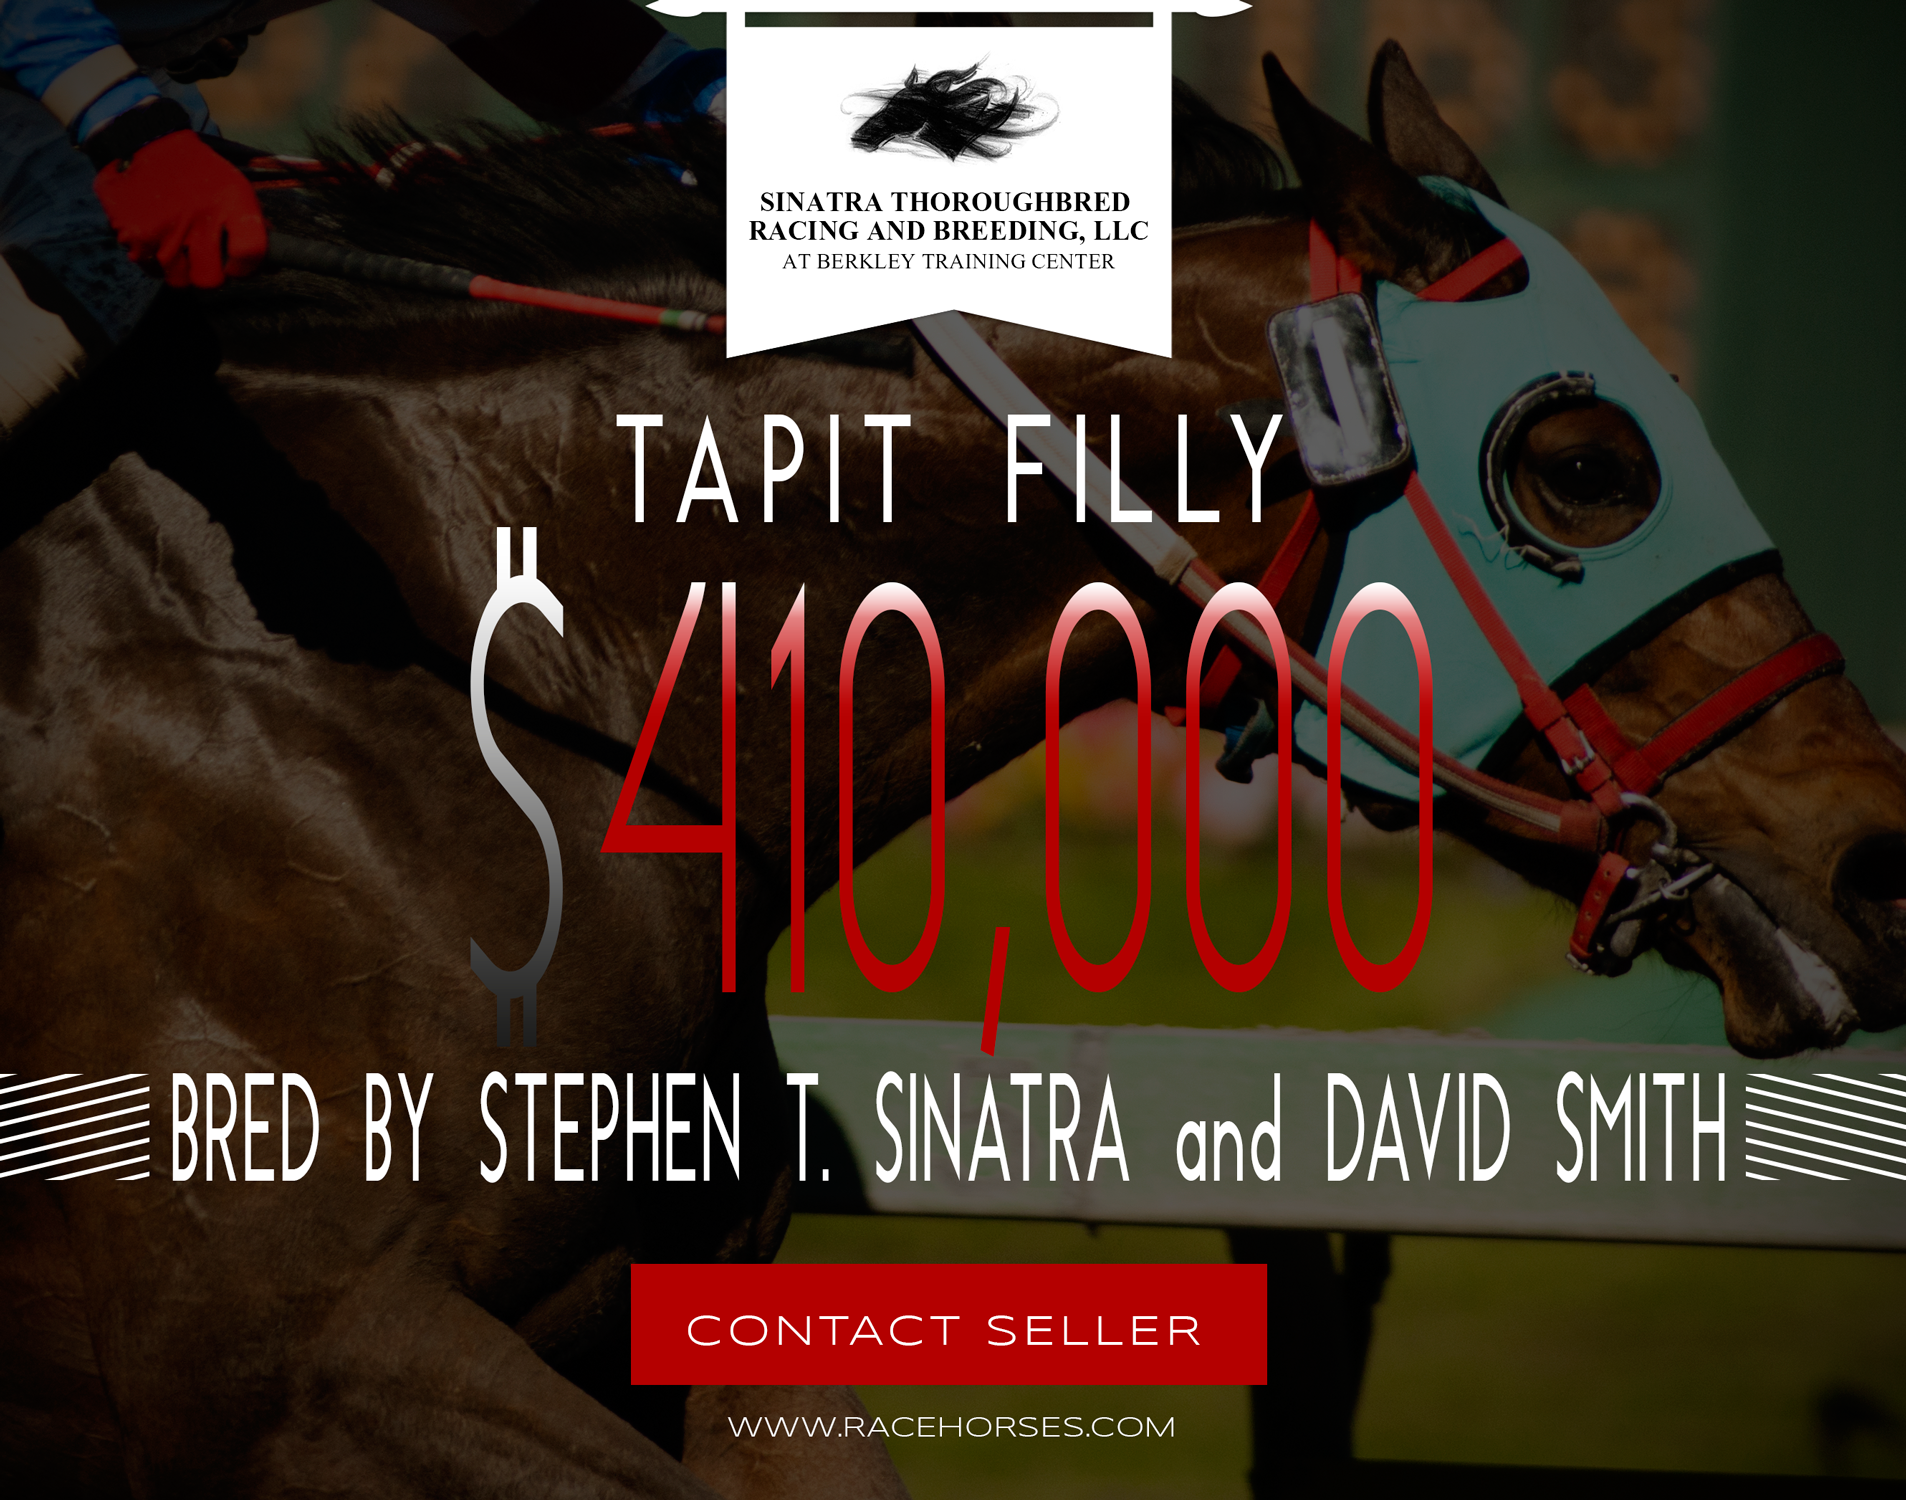 Tapit Filly for sale. Bred by Stephen T. Sinatra and David Smith